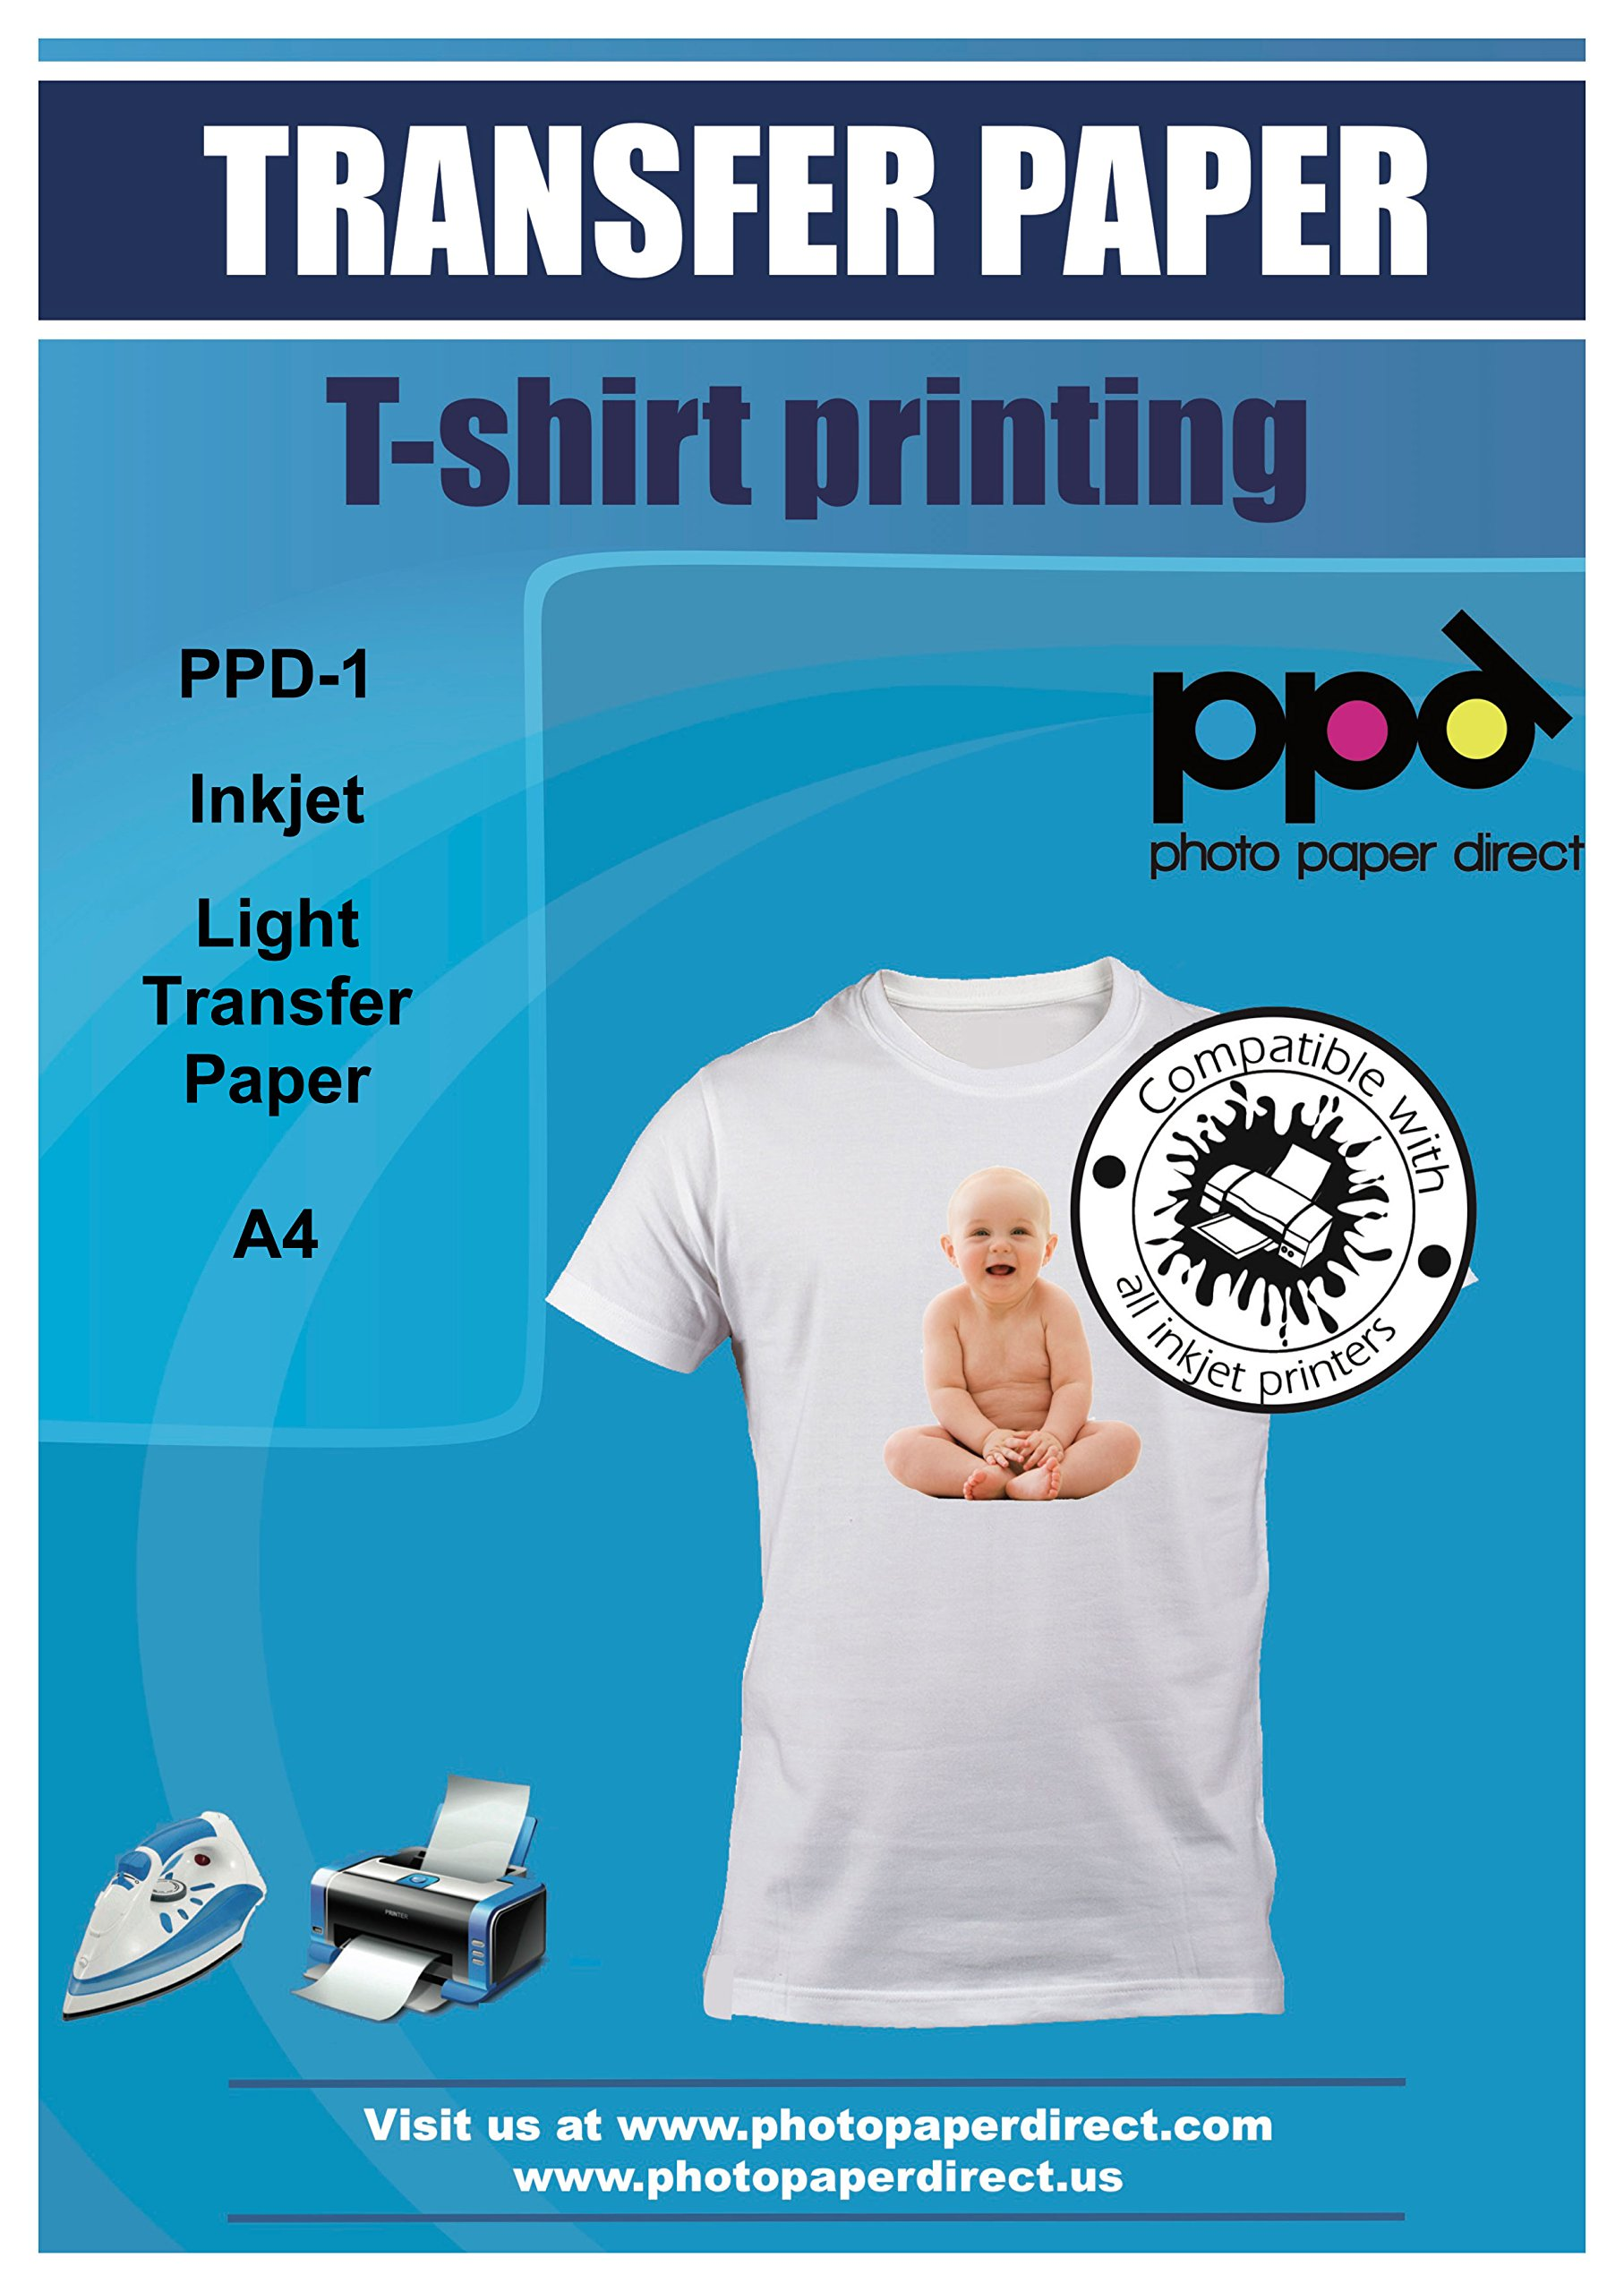 PPD Inkjet Iron-On Light T Shirt Transfers Paper LTR 8.5x11'' Pack of 40 Sheets (PPD001-40)